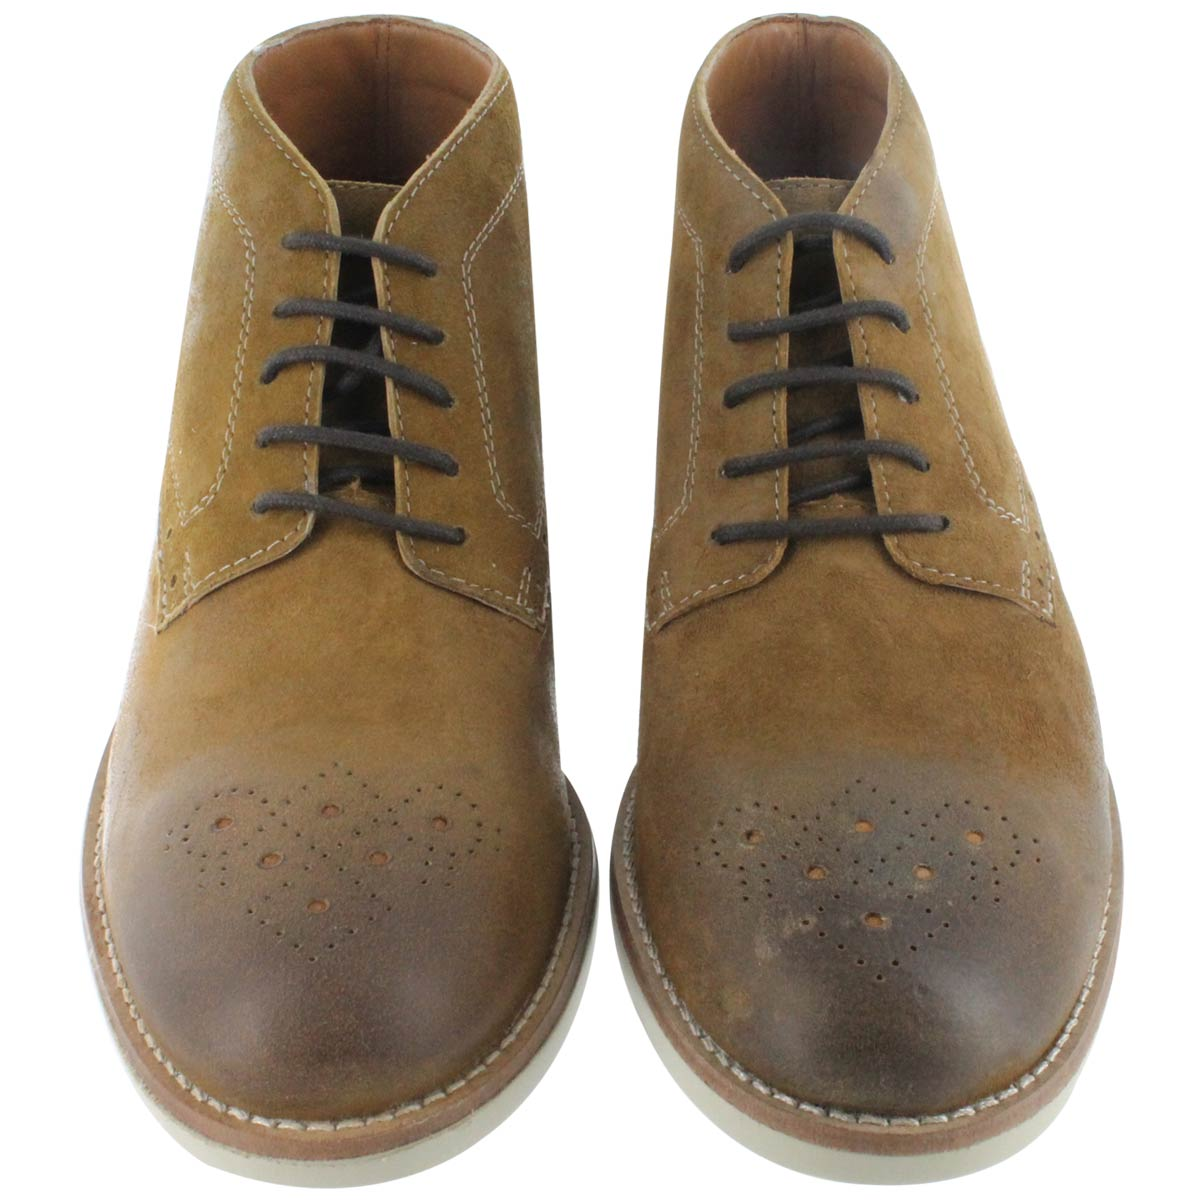 Clarks Men's RASPIN LIMIT tobacco lace up boots 03203M